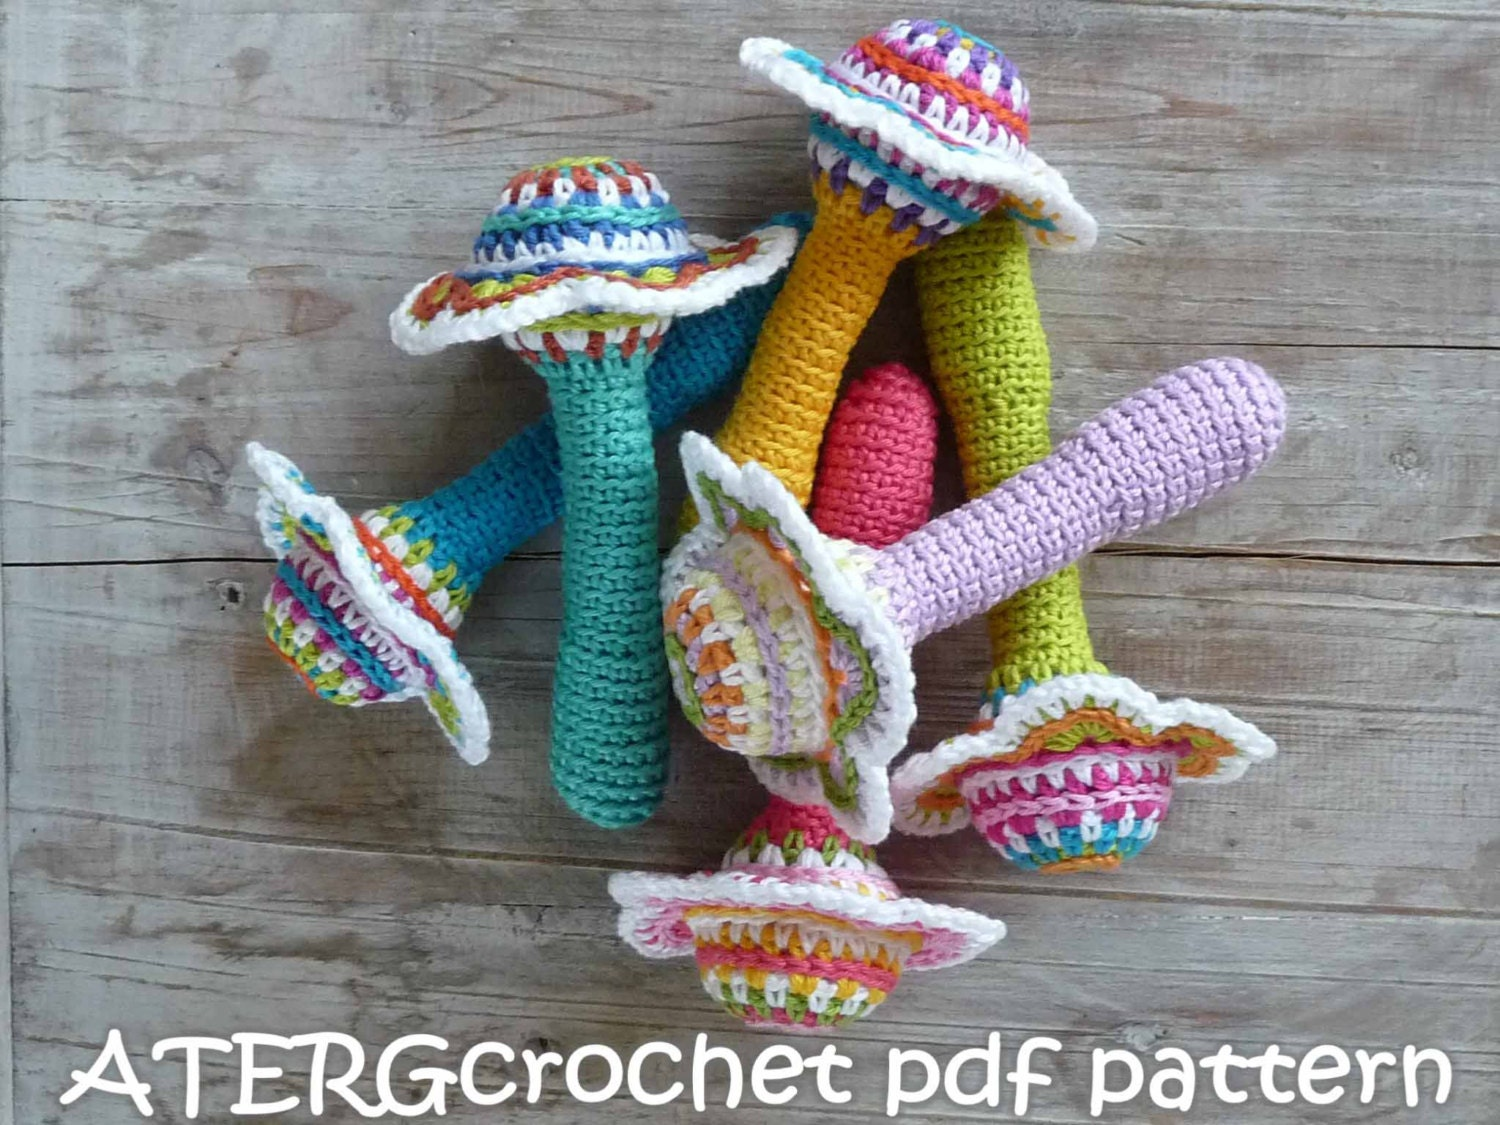 Baby Rattle Crochet Patterns submited images Pic2Fly